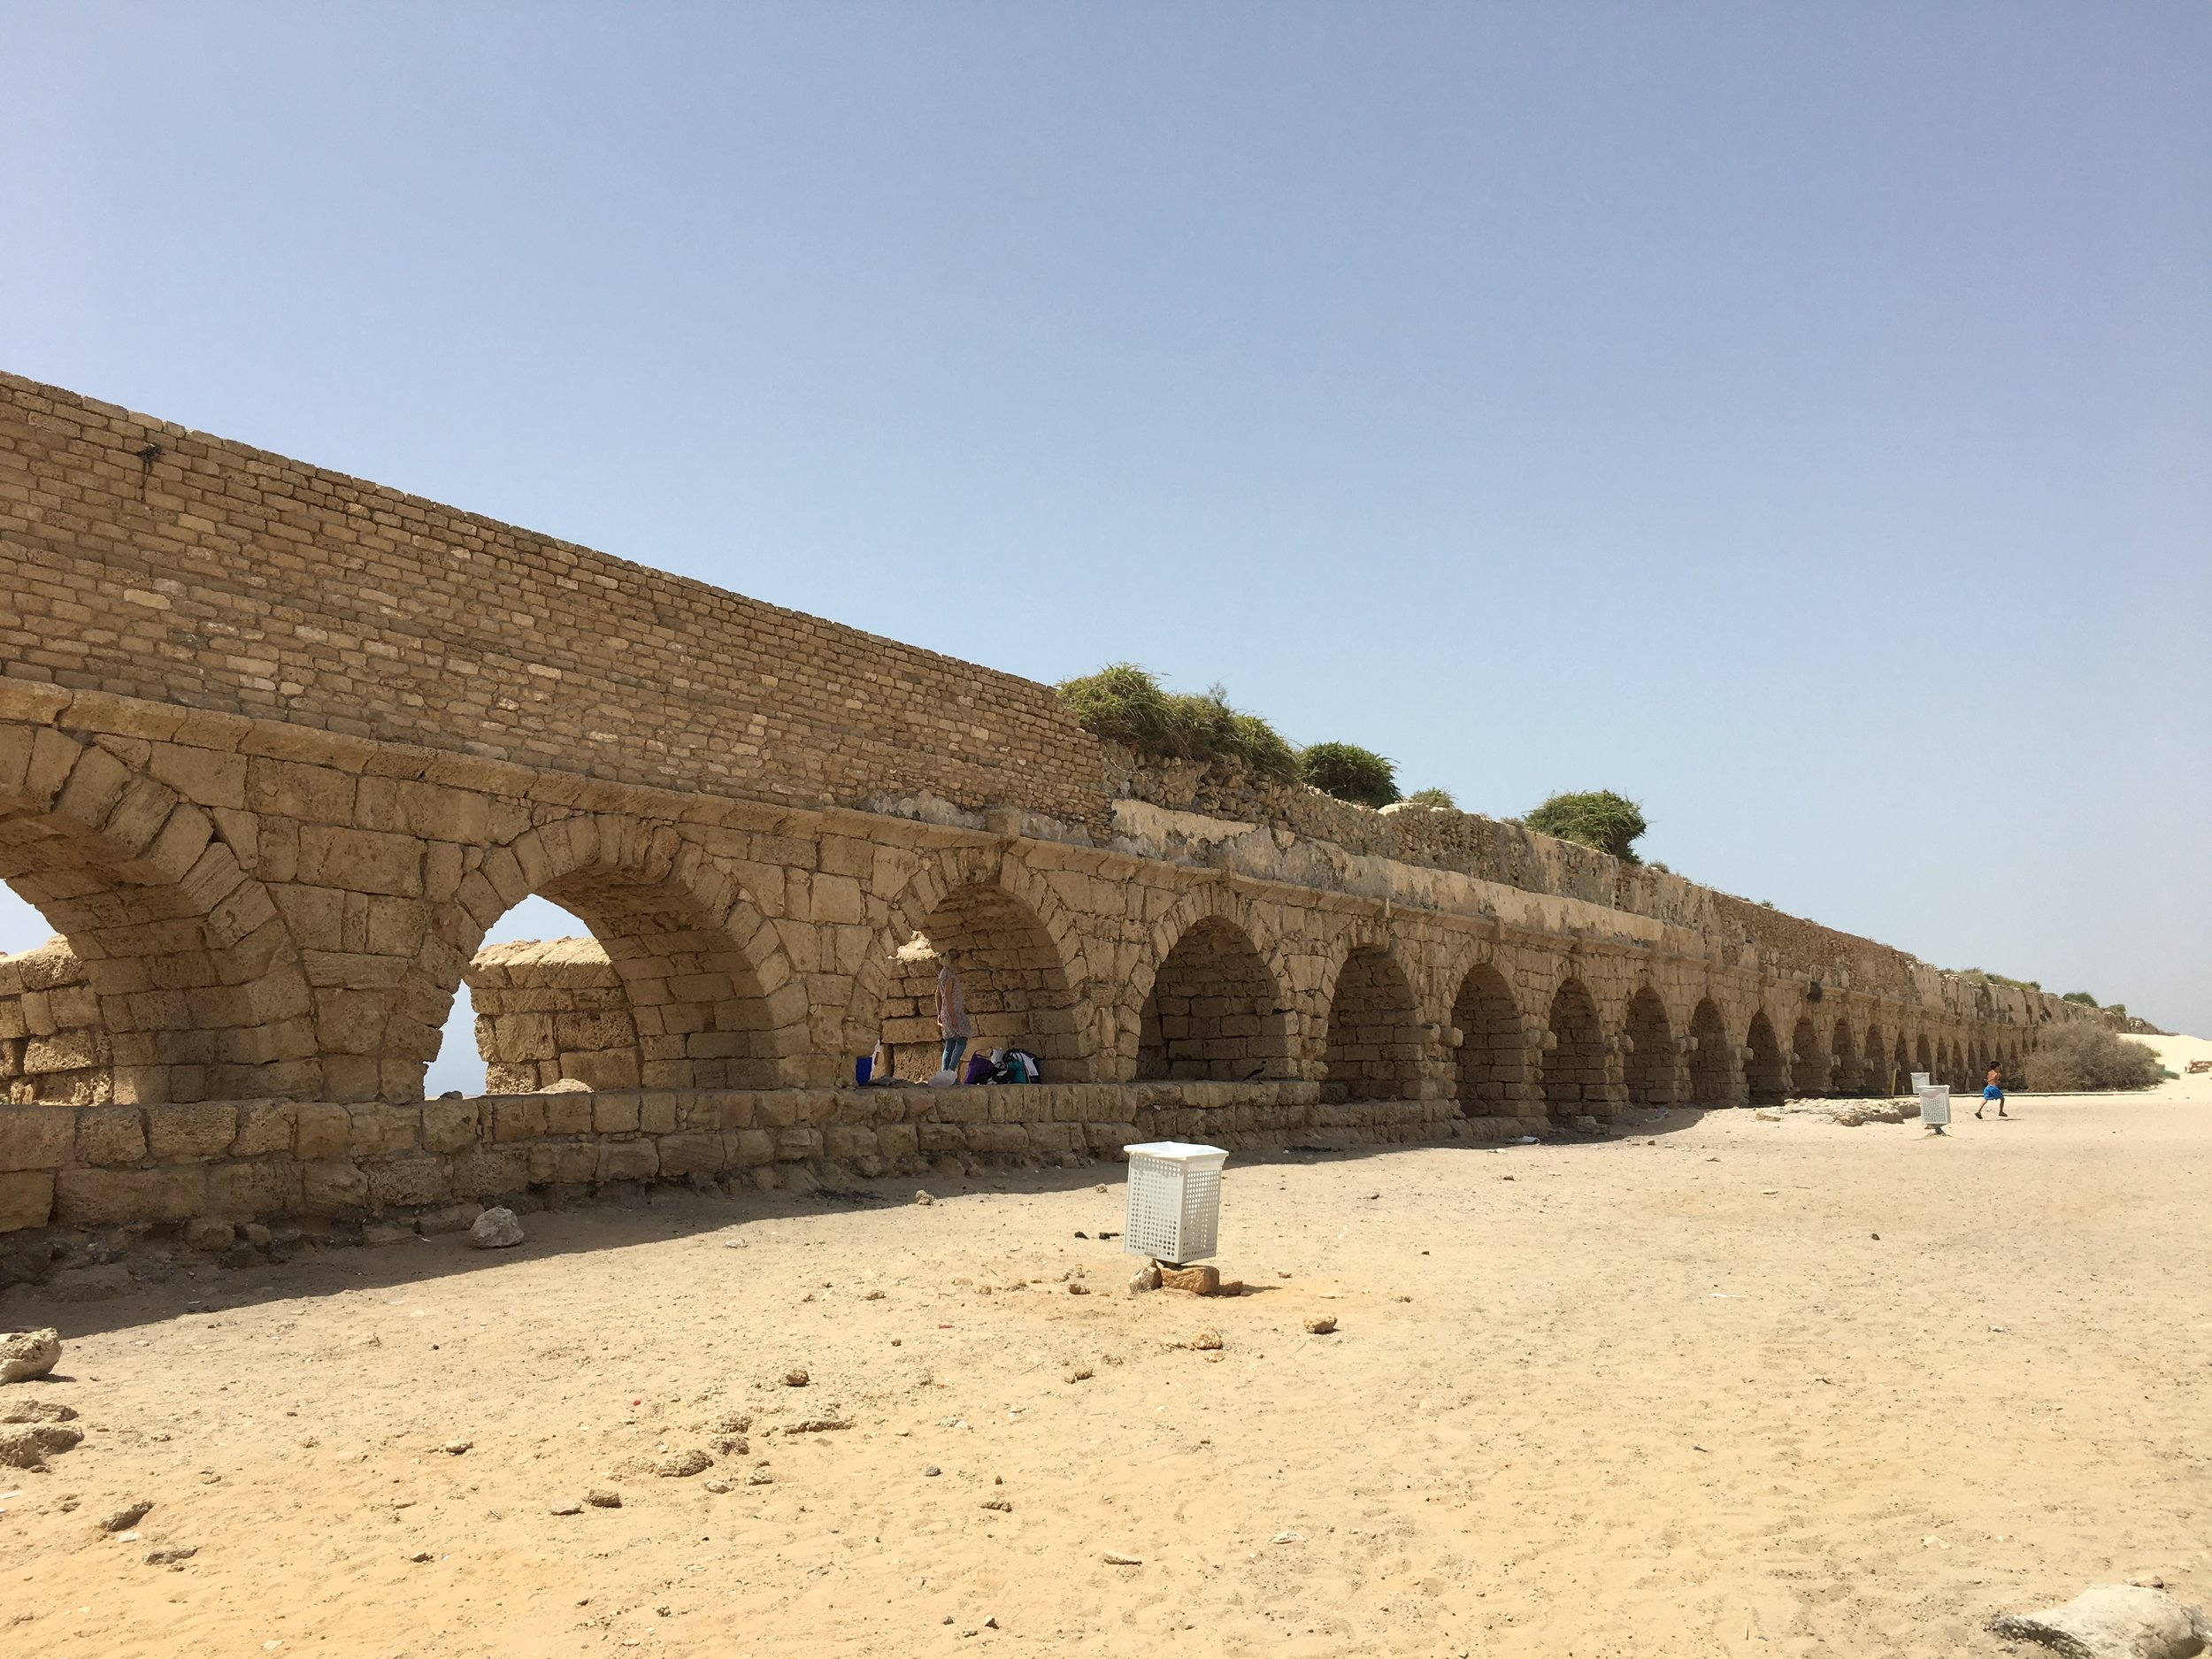 Miles of aqueduct remains on the coast